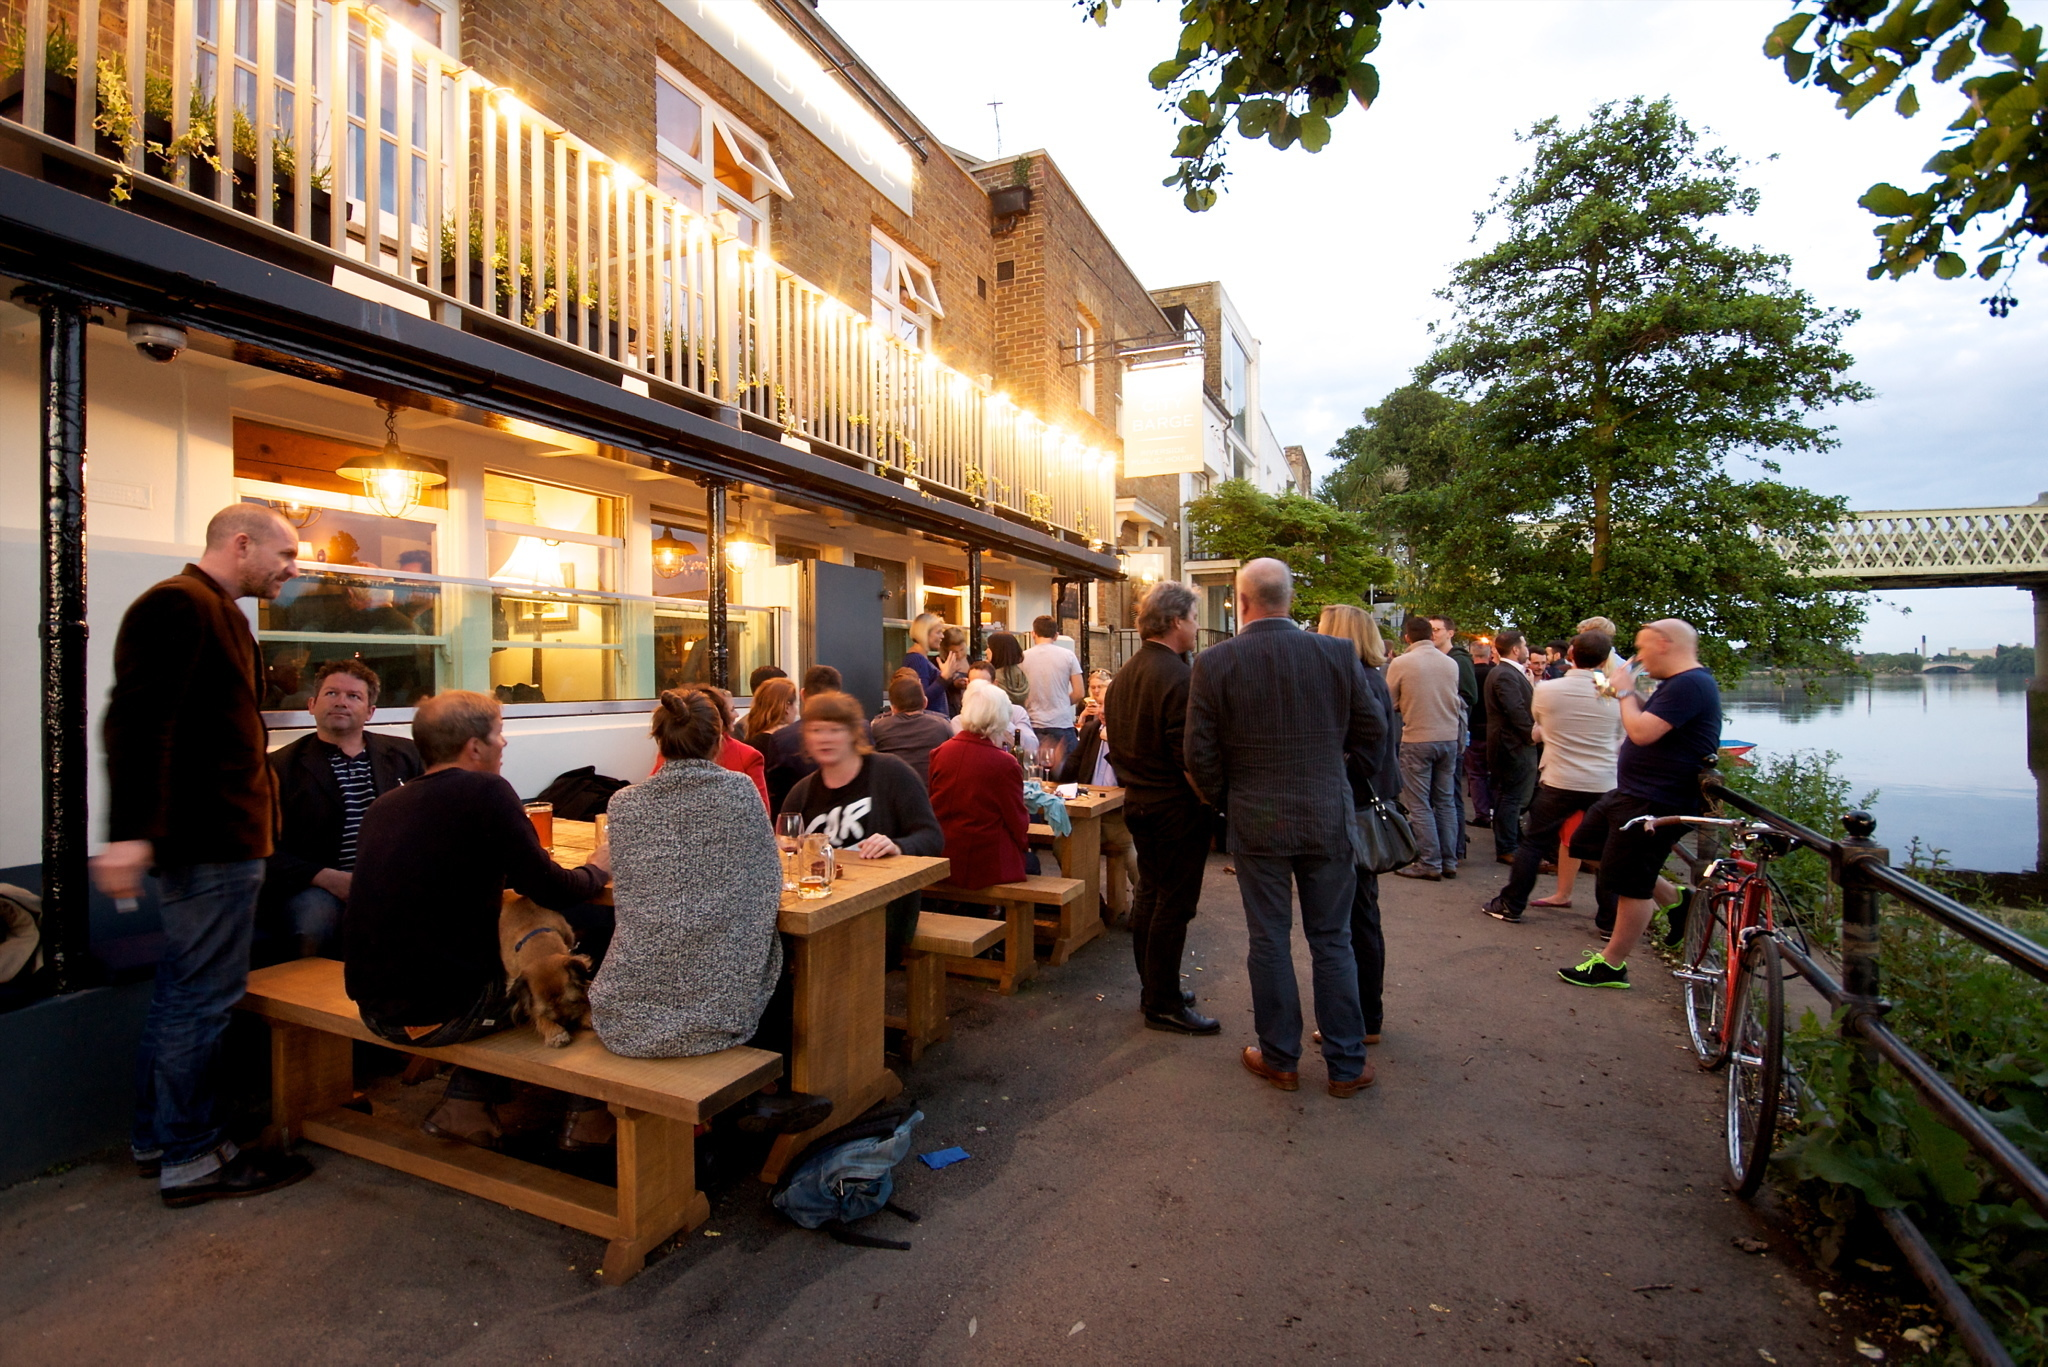 London's best riverside pubs and bars